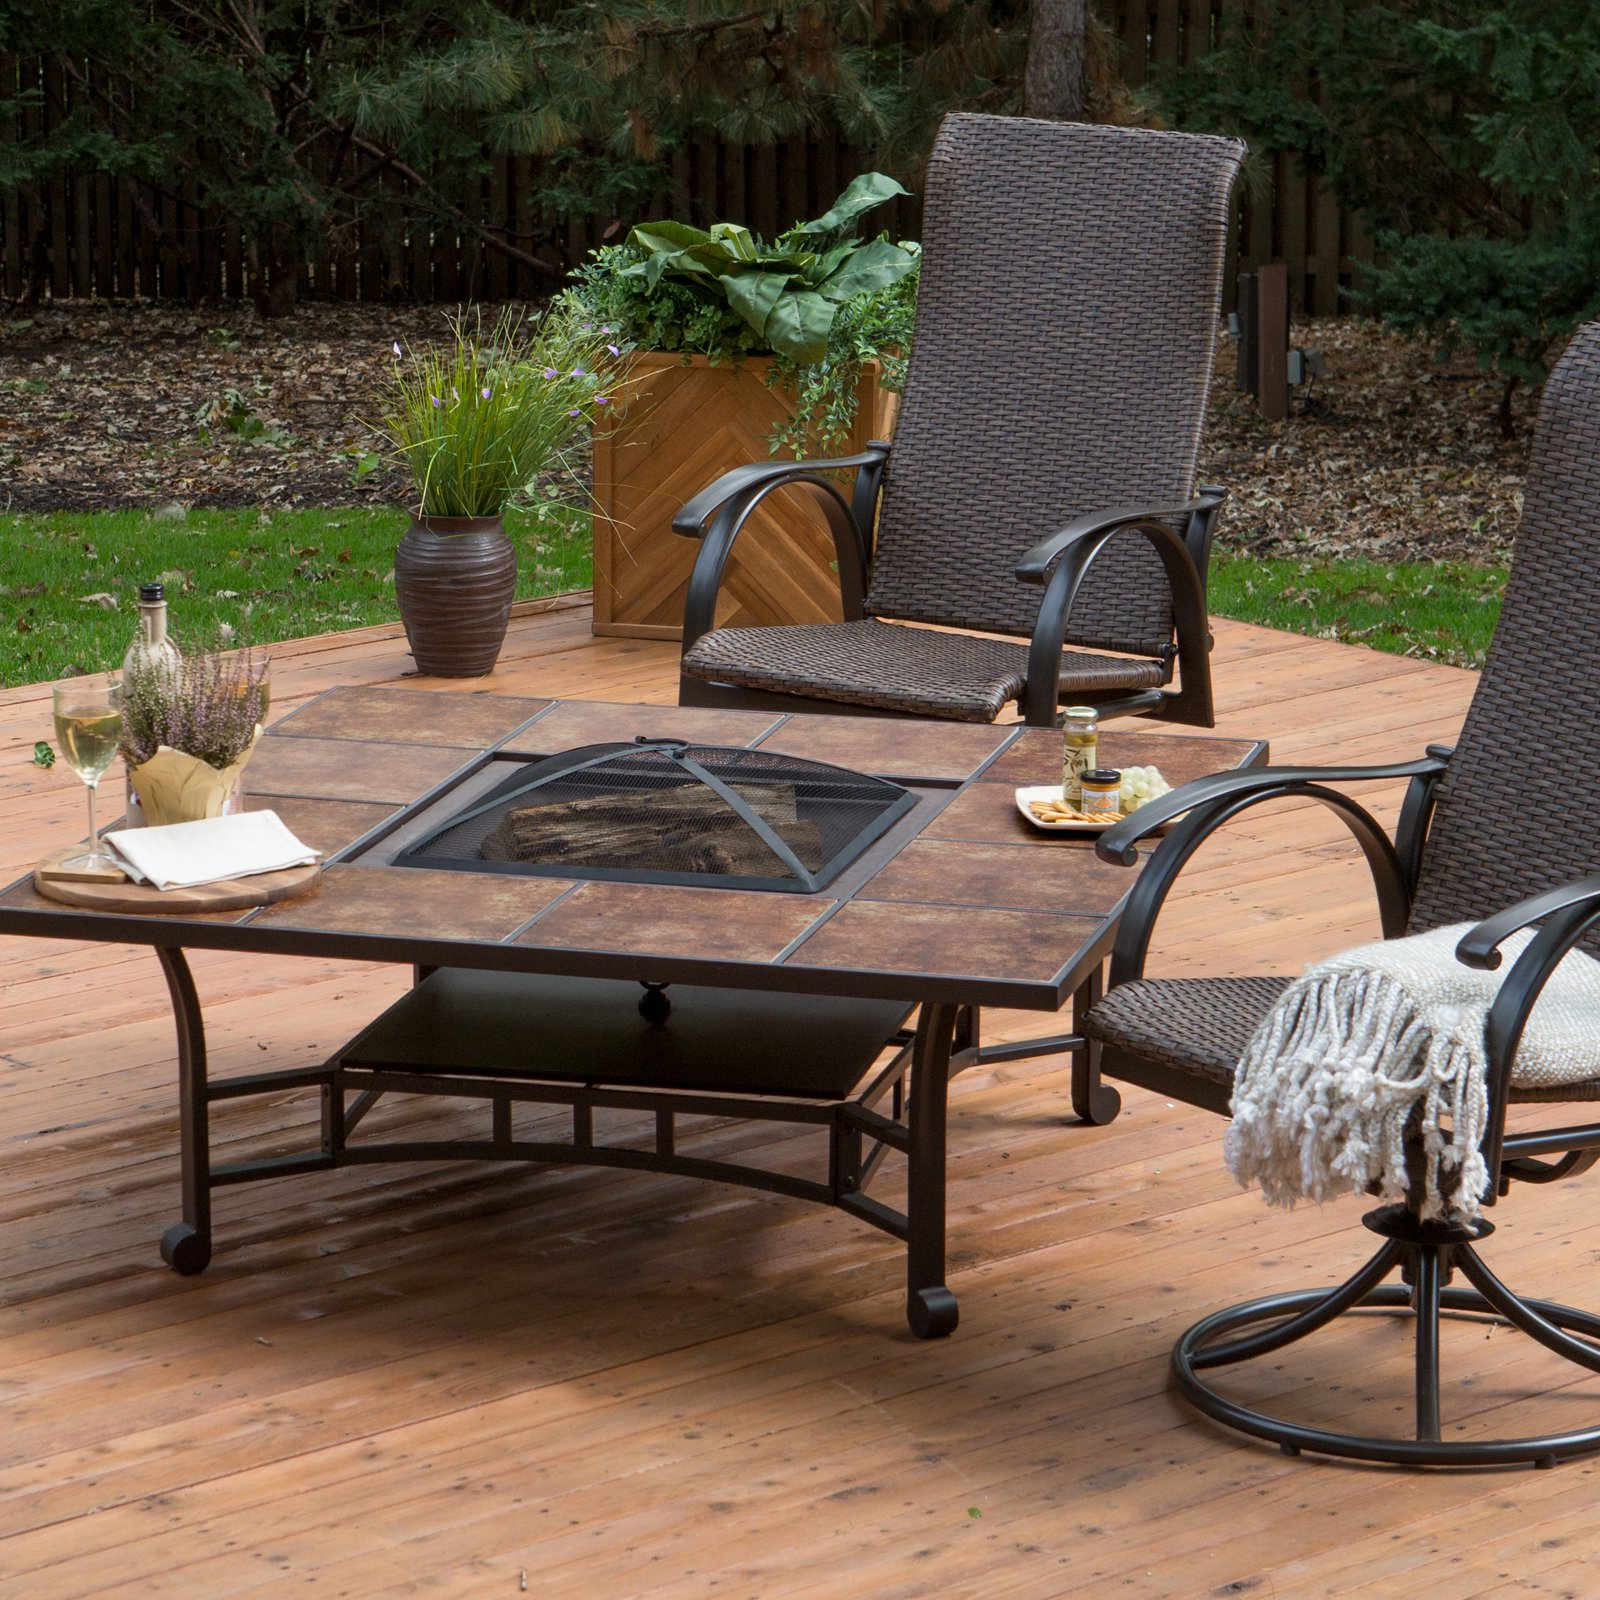 Red Ember Wheatland 50 in. Outdoor Square Tile Convertible Fire Pit Table with FREE Cover